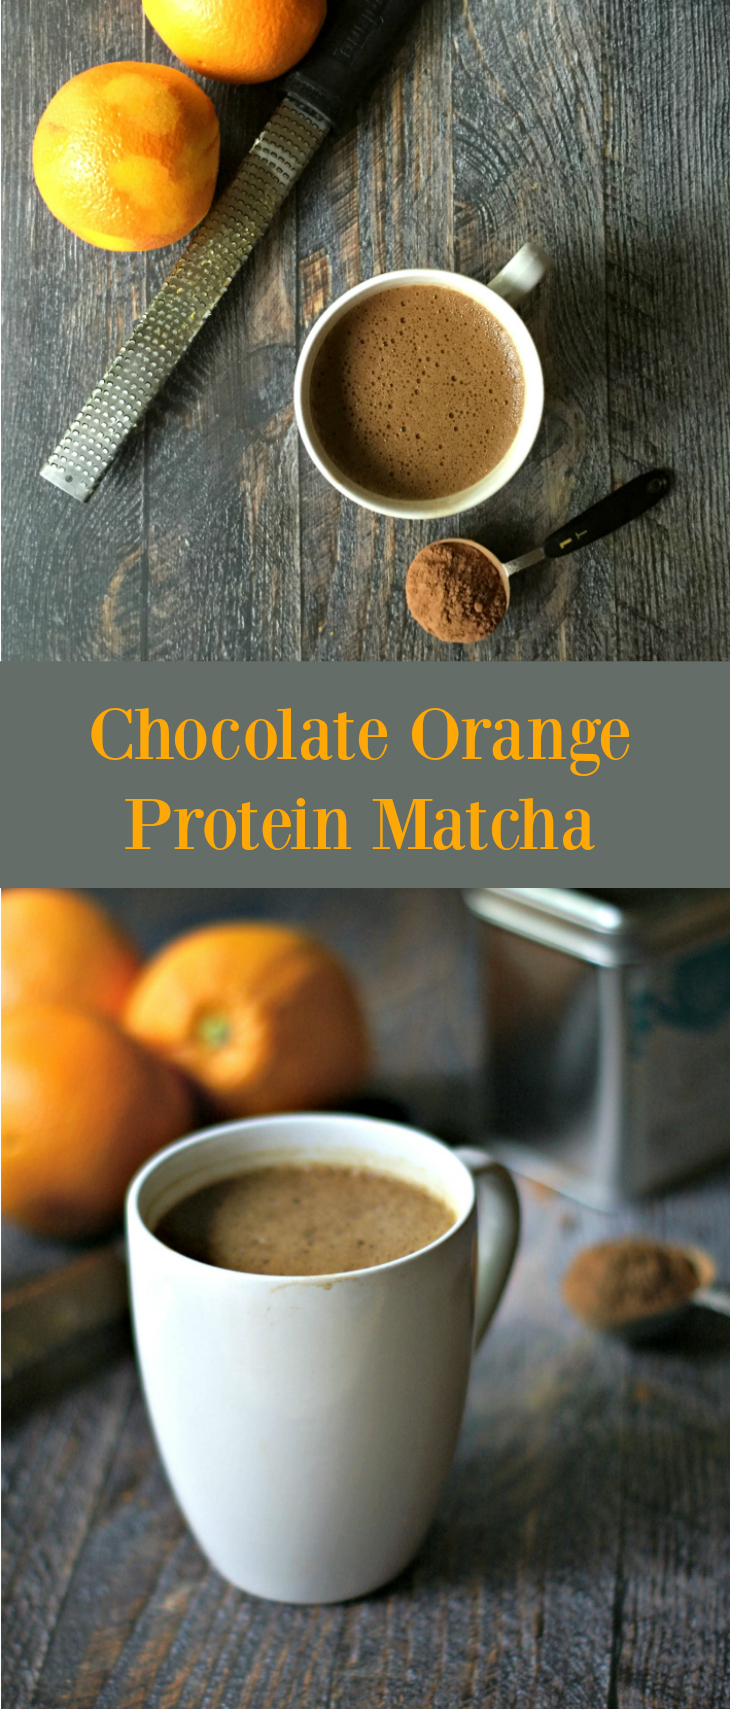 Chocolate-Orange-Protein-Matcha-p